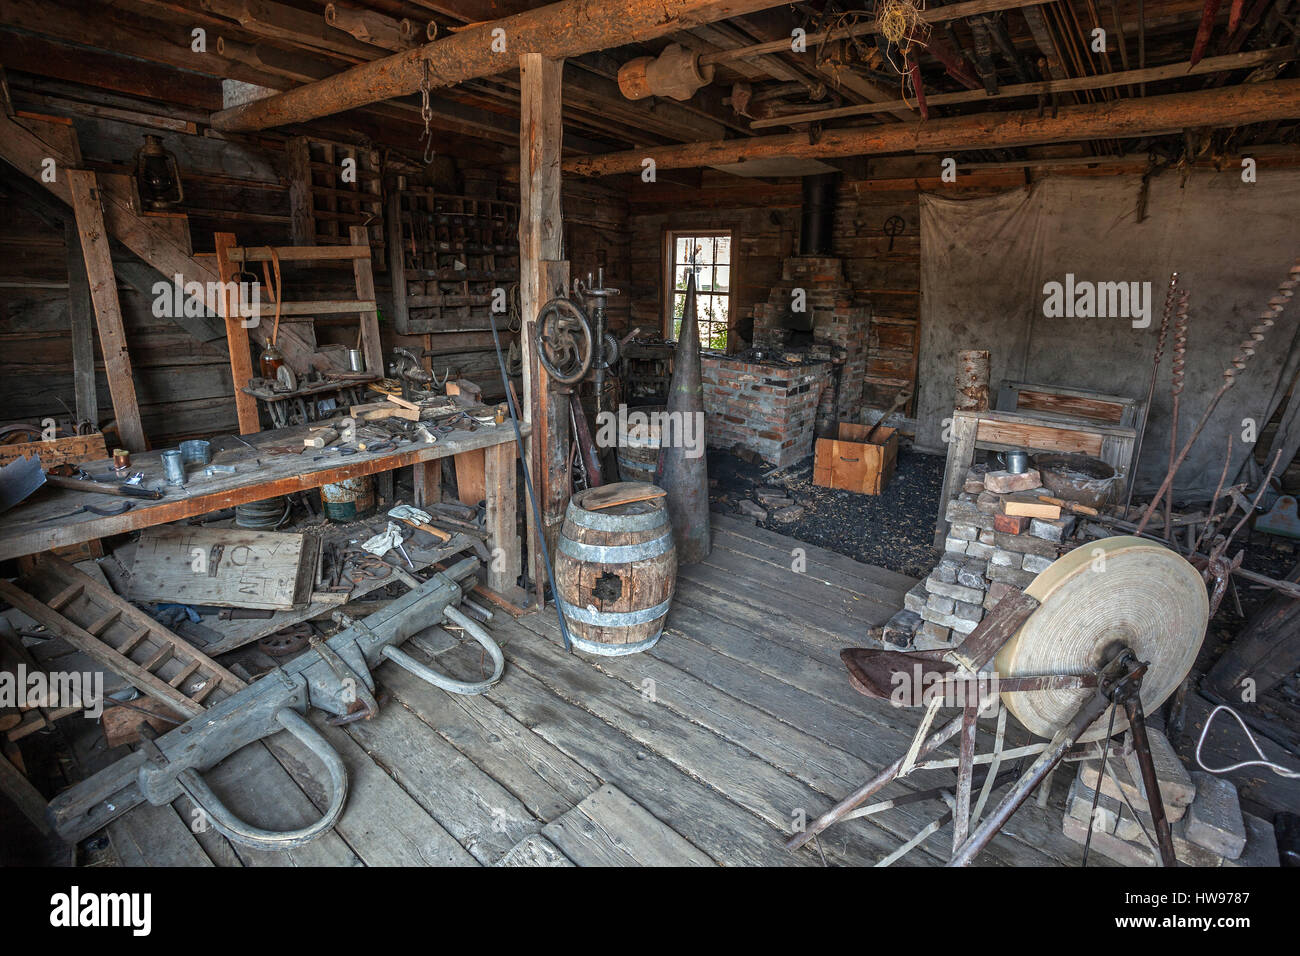 Iron Shop Old Blacksmith Shop Stock Photos Old Blacksmith Shop Stock